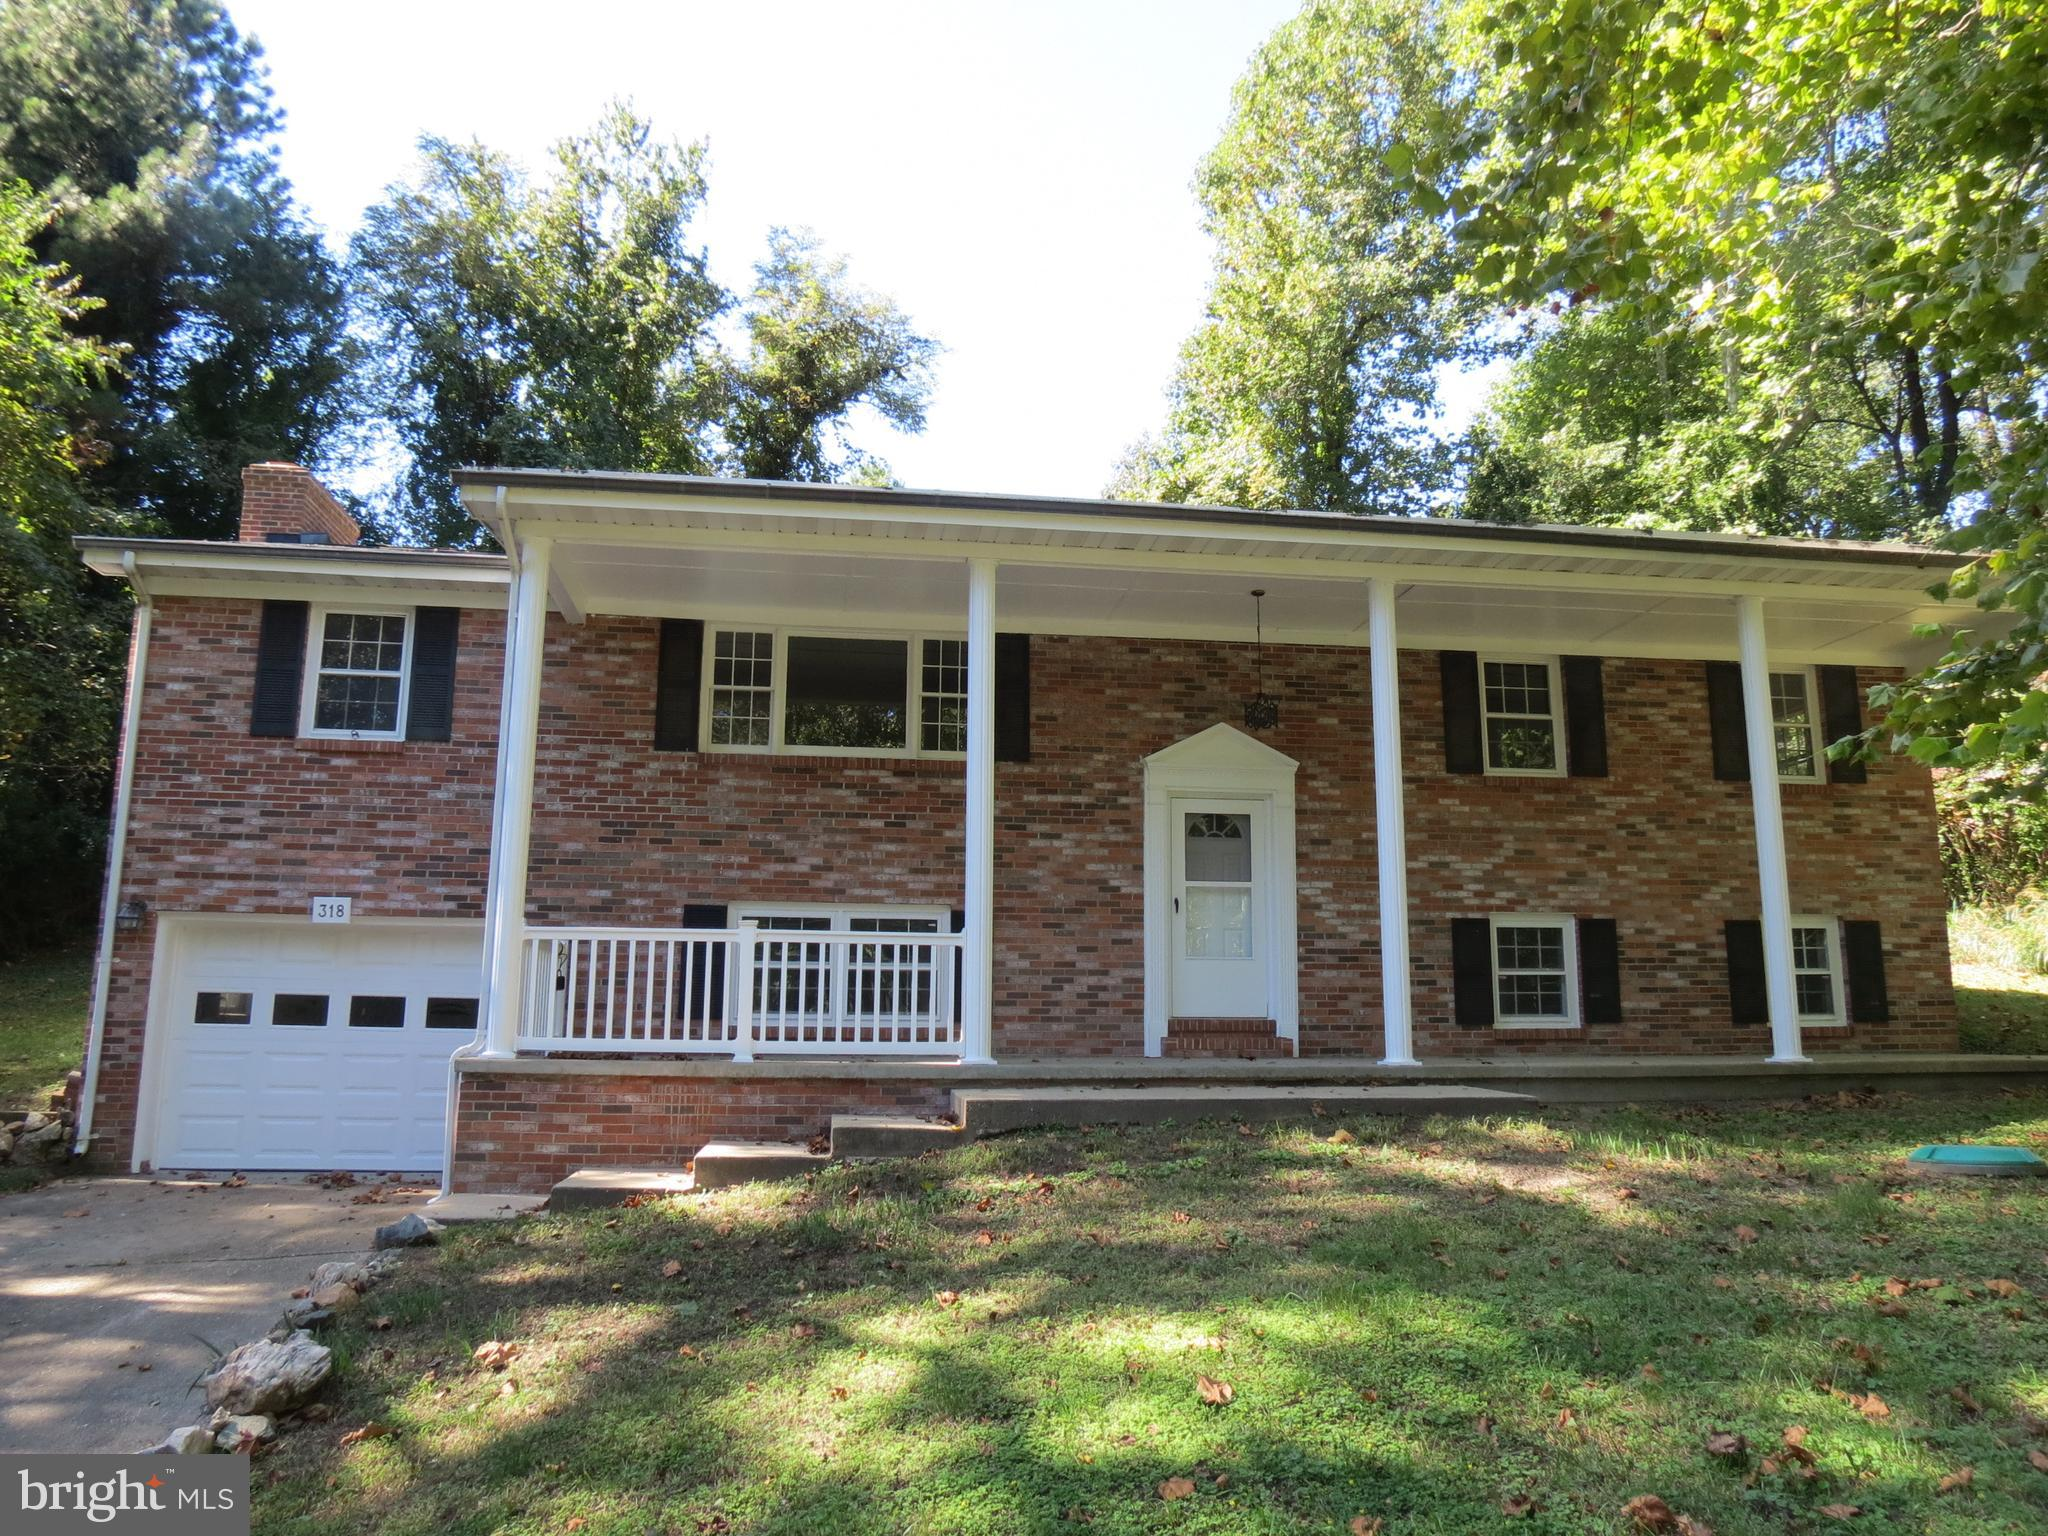 This newly renovated home is a fantastic opportunity to own a house just a short walk to a private s